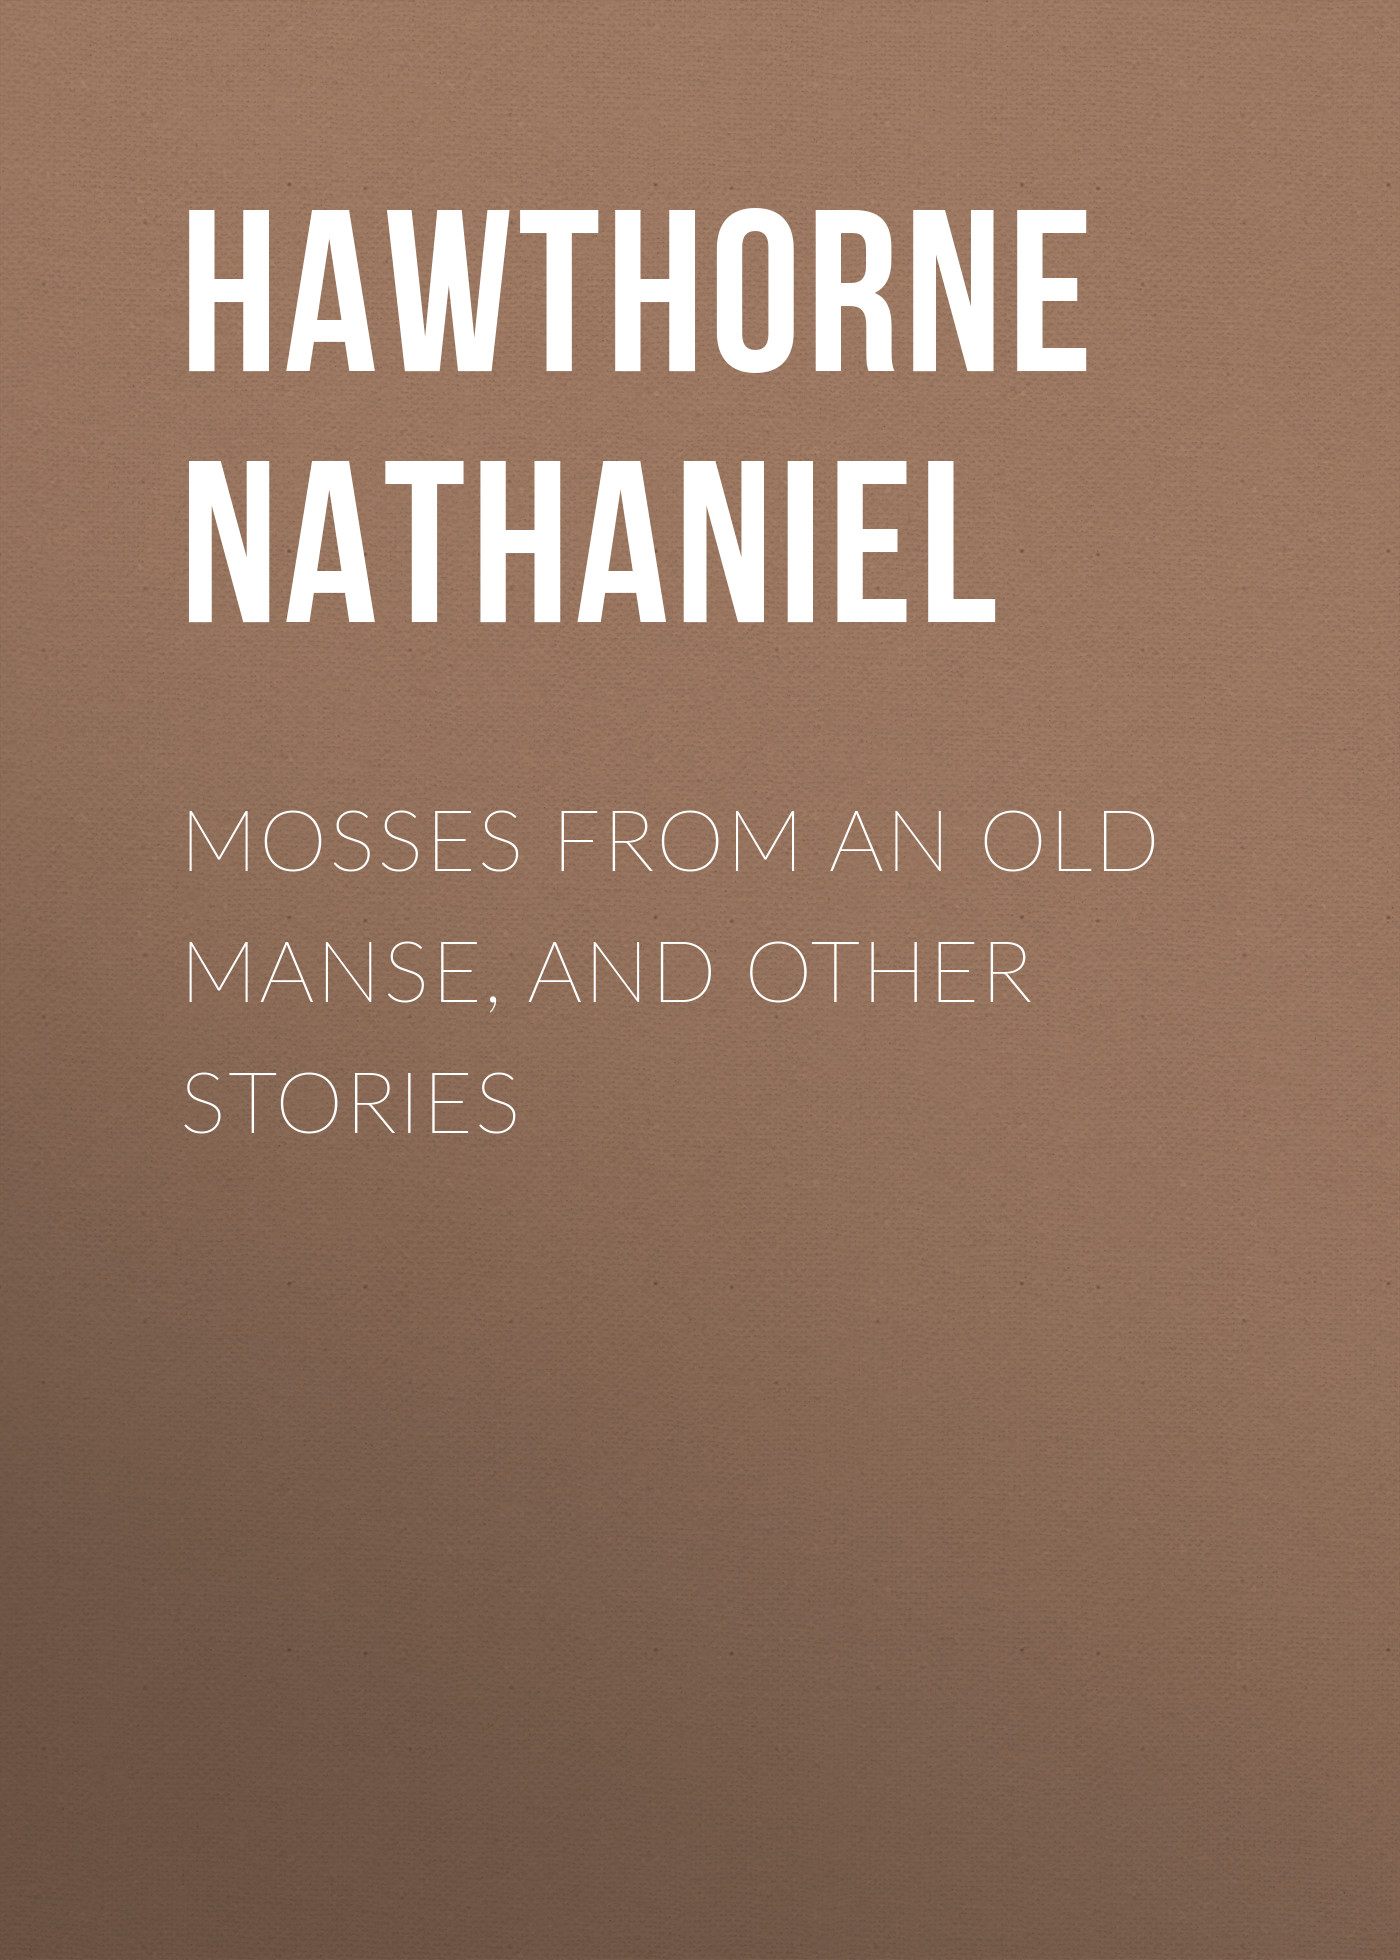 Hawthorne Nathaniel Mosses from an Old Manse, and Other Stories